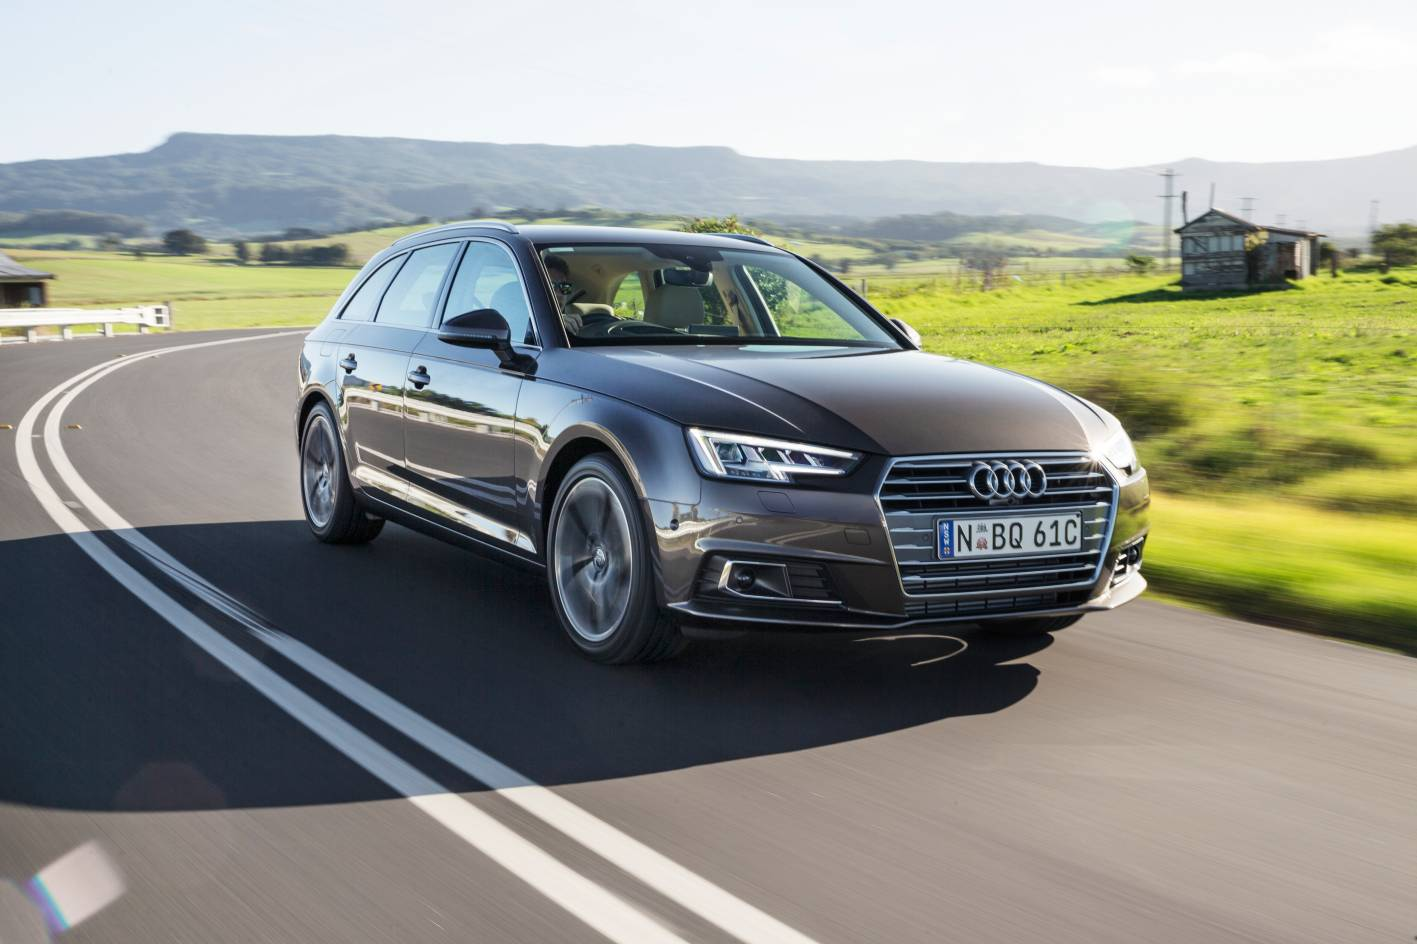 All-new Audi A4 Avant joins range from $63,900 - ForceGT.com